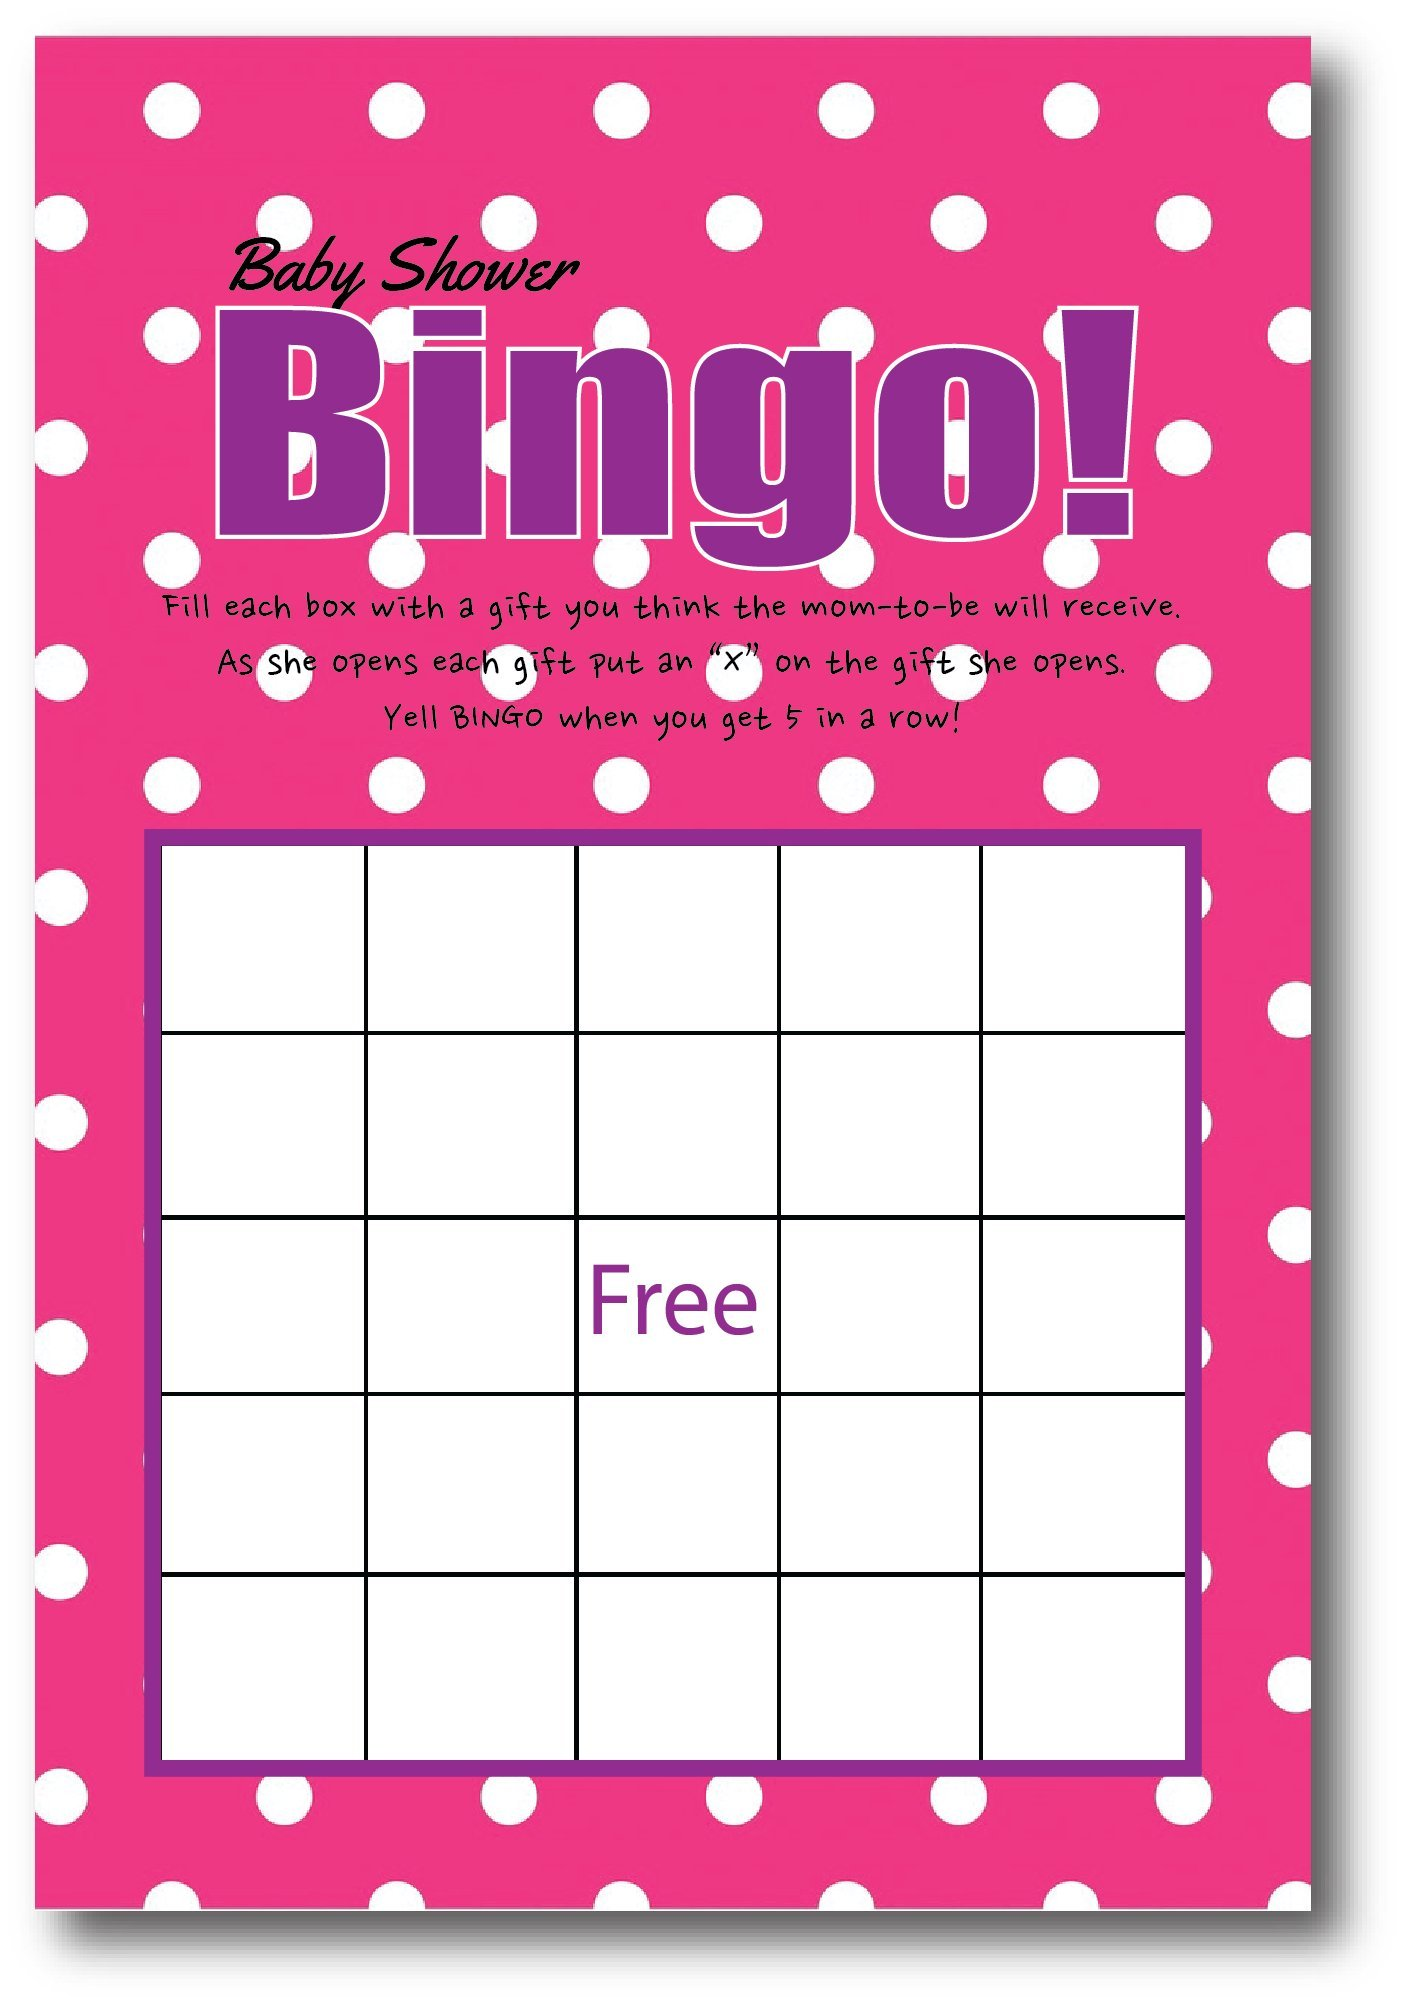 Baby Girl Shower Games | By L and P Designs | Baby Party Ideas (Bingo)